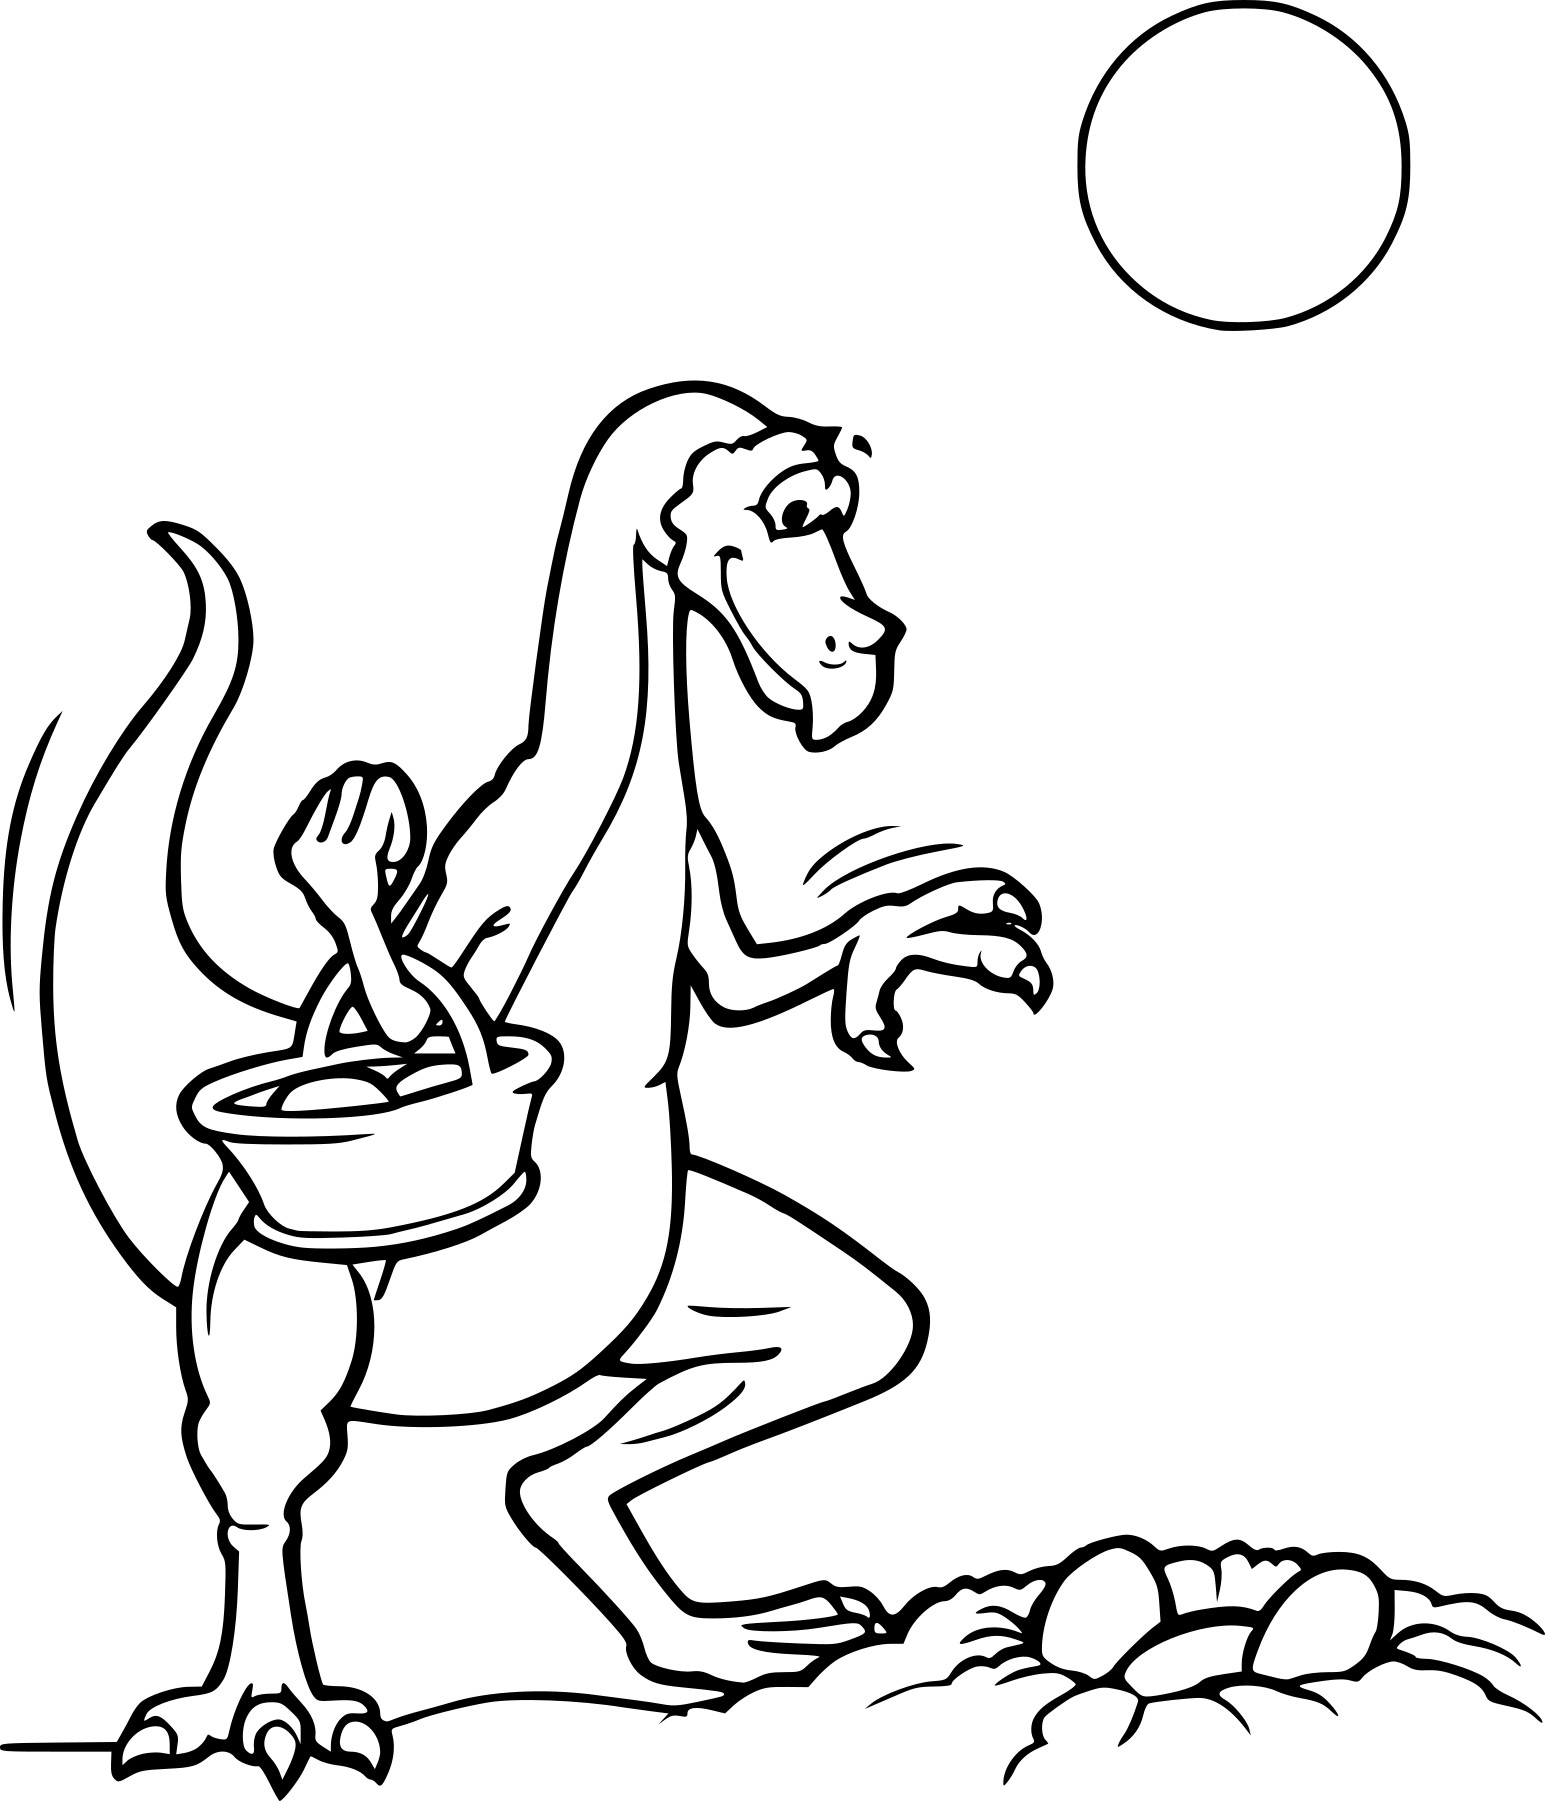 Coloriage Dinosaure King Terry.Coloriage Dinosaure King A Imprimer Sur Coloriages Info Name